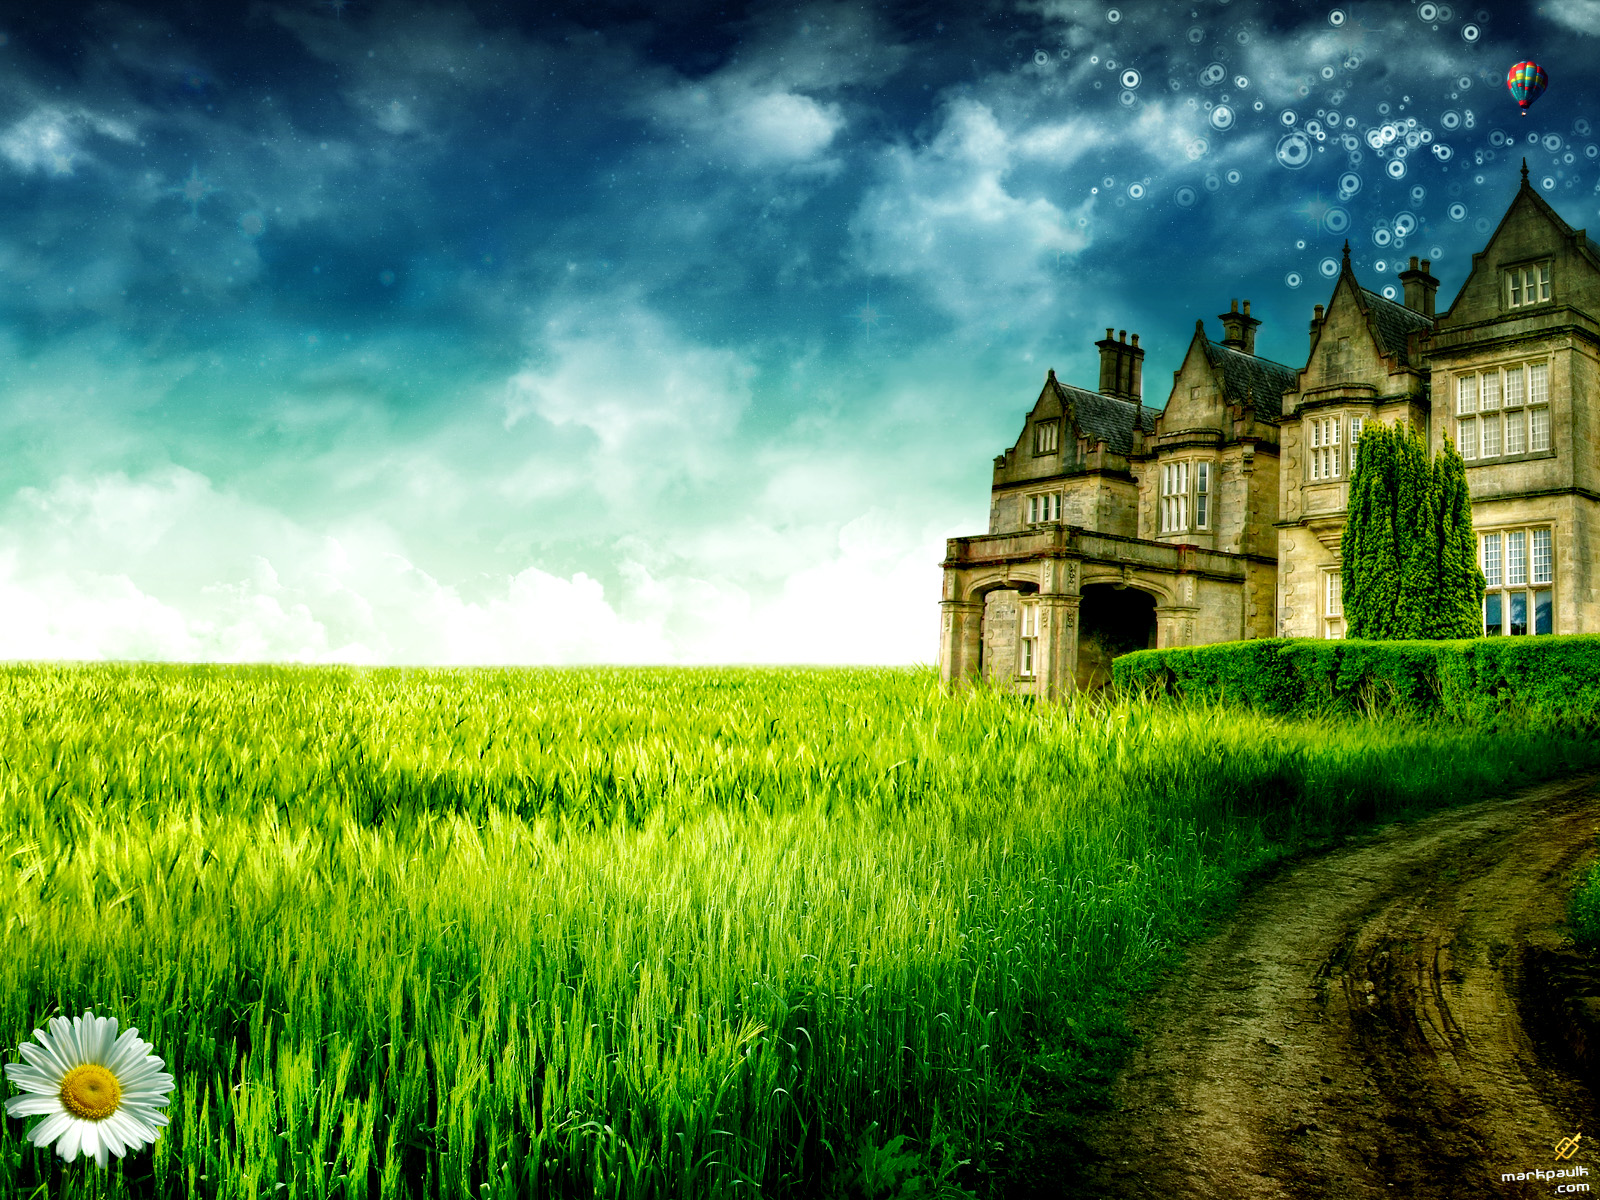 Amazing Wallpaper Home Screen Scenery - 1270017043-g8ethqp  Pictures_89766.jpg